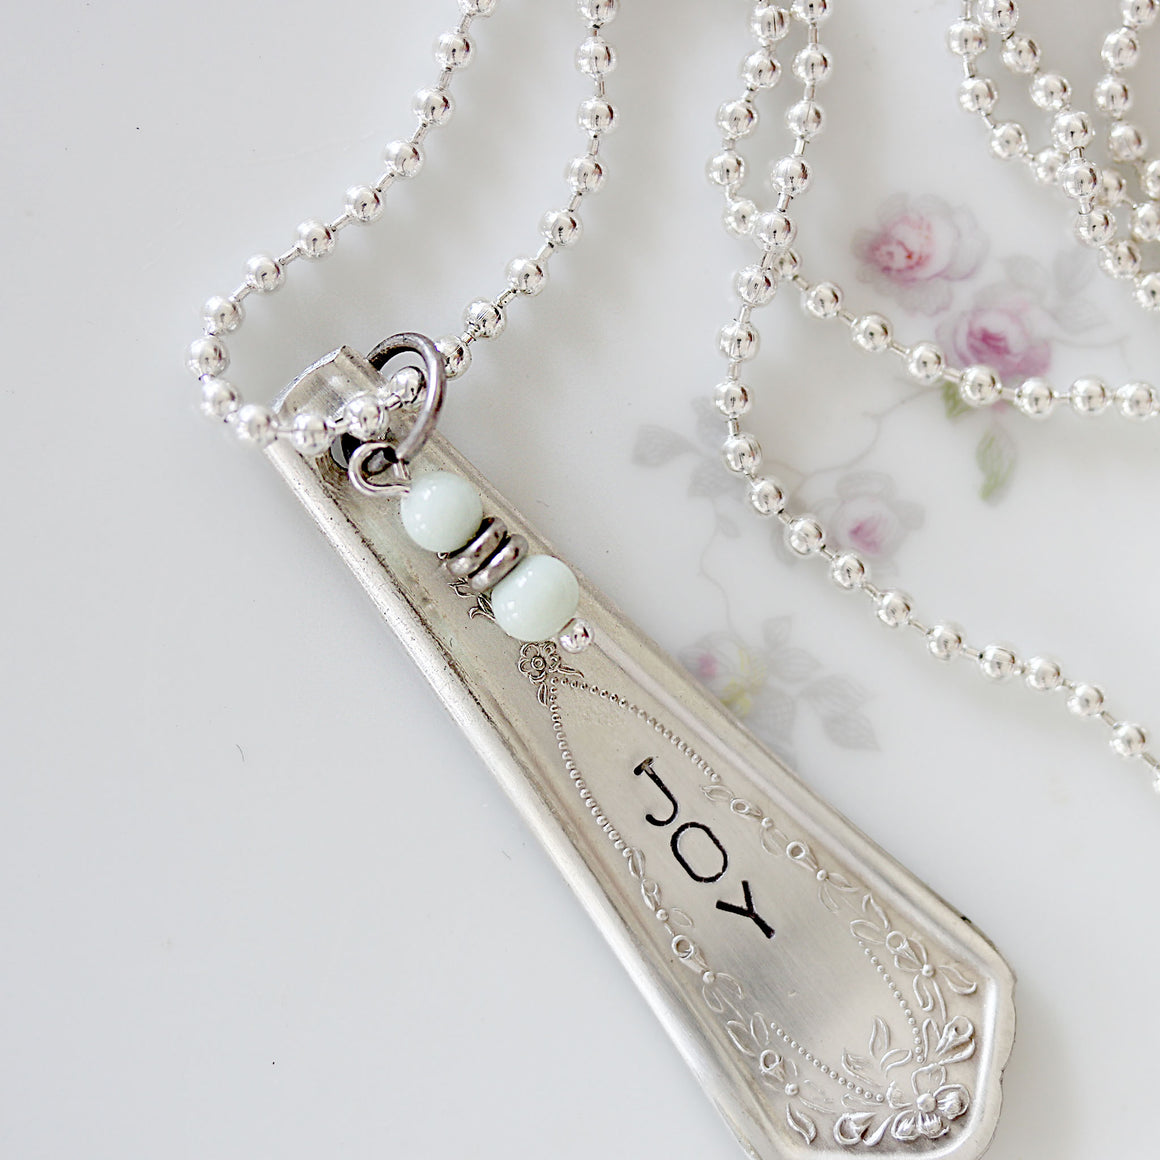 Spoon Jewelry Necklace with Pale Mint Bead Dangle